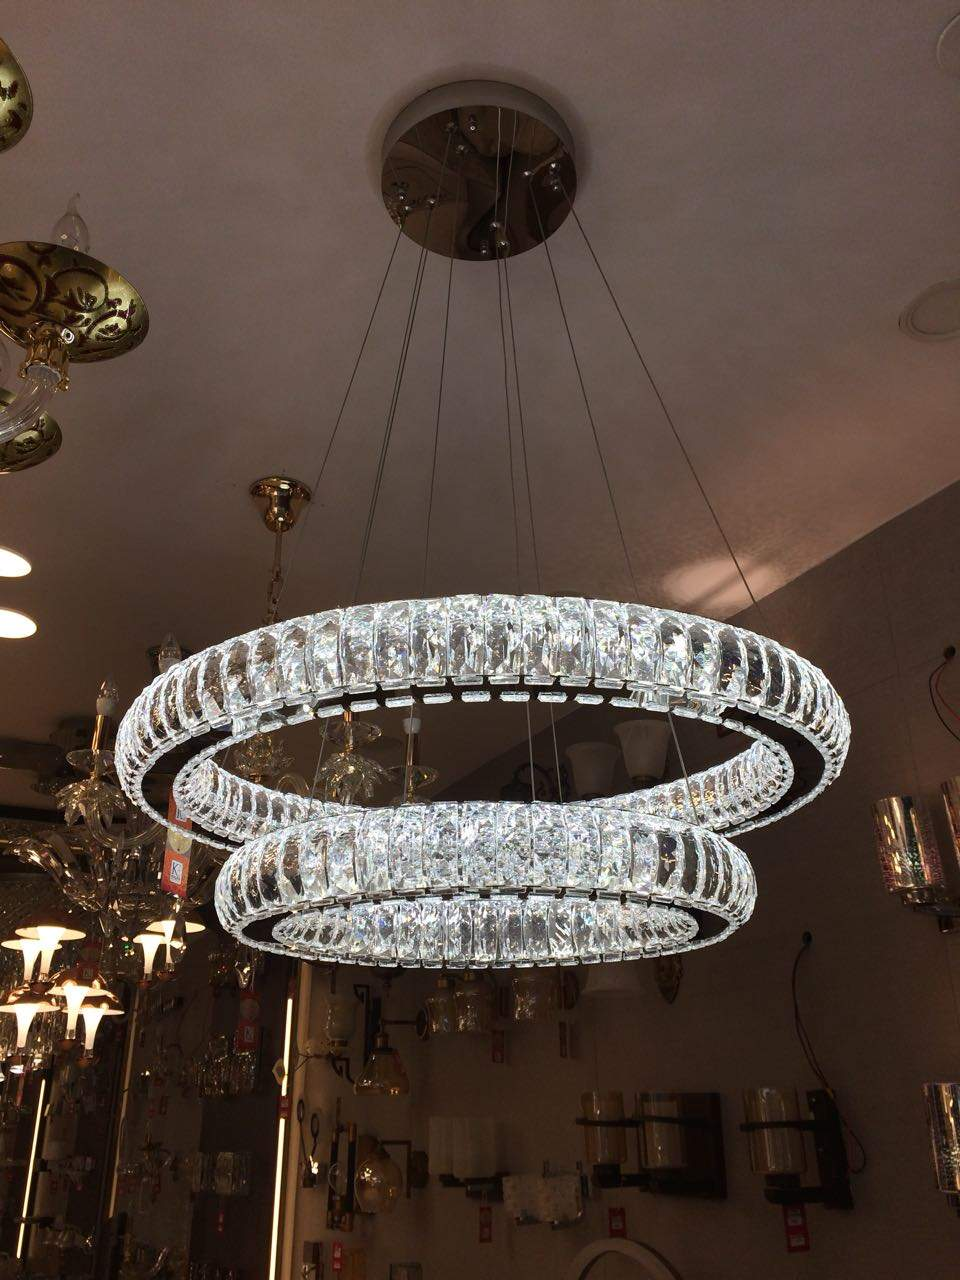 Chandelier light dealers in nehru place delhi